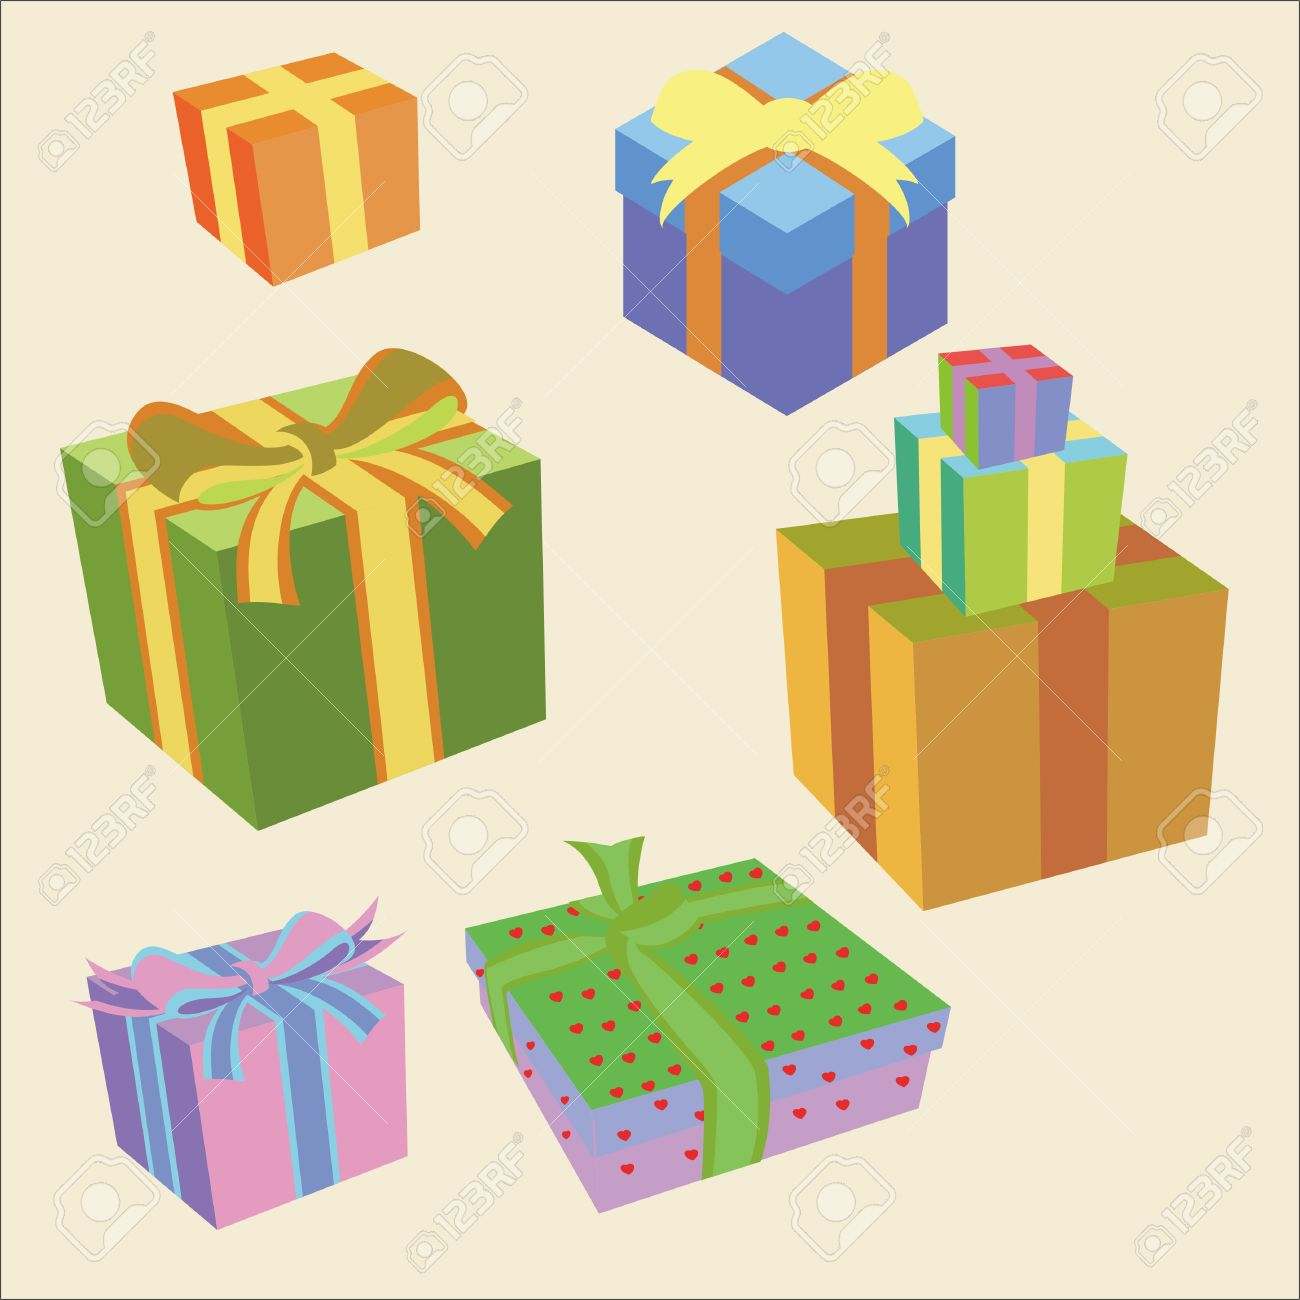 Gift box vector digital clipart 2 royalty free cliparts vectors gift box vector digital clipart 2 stock vector 27509821 negle Image collections